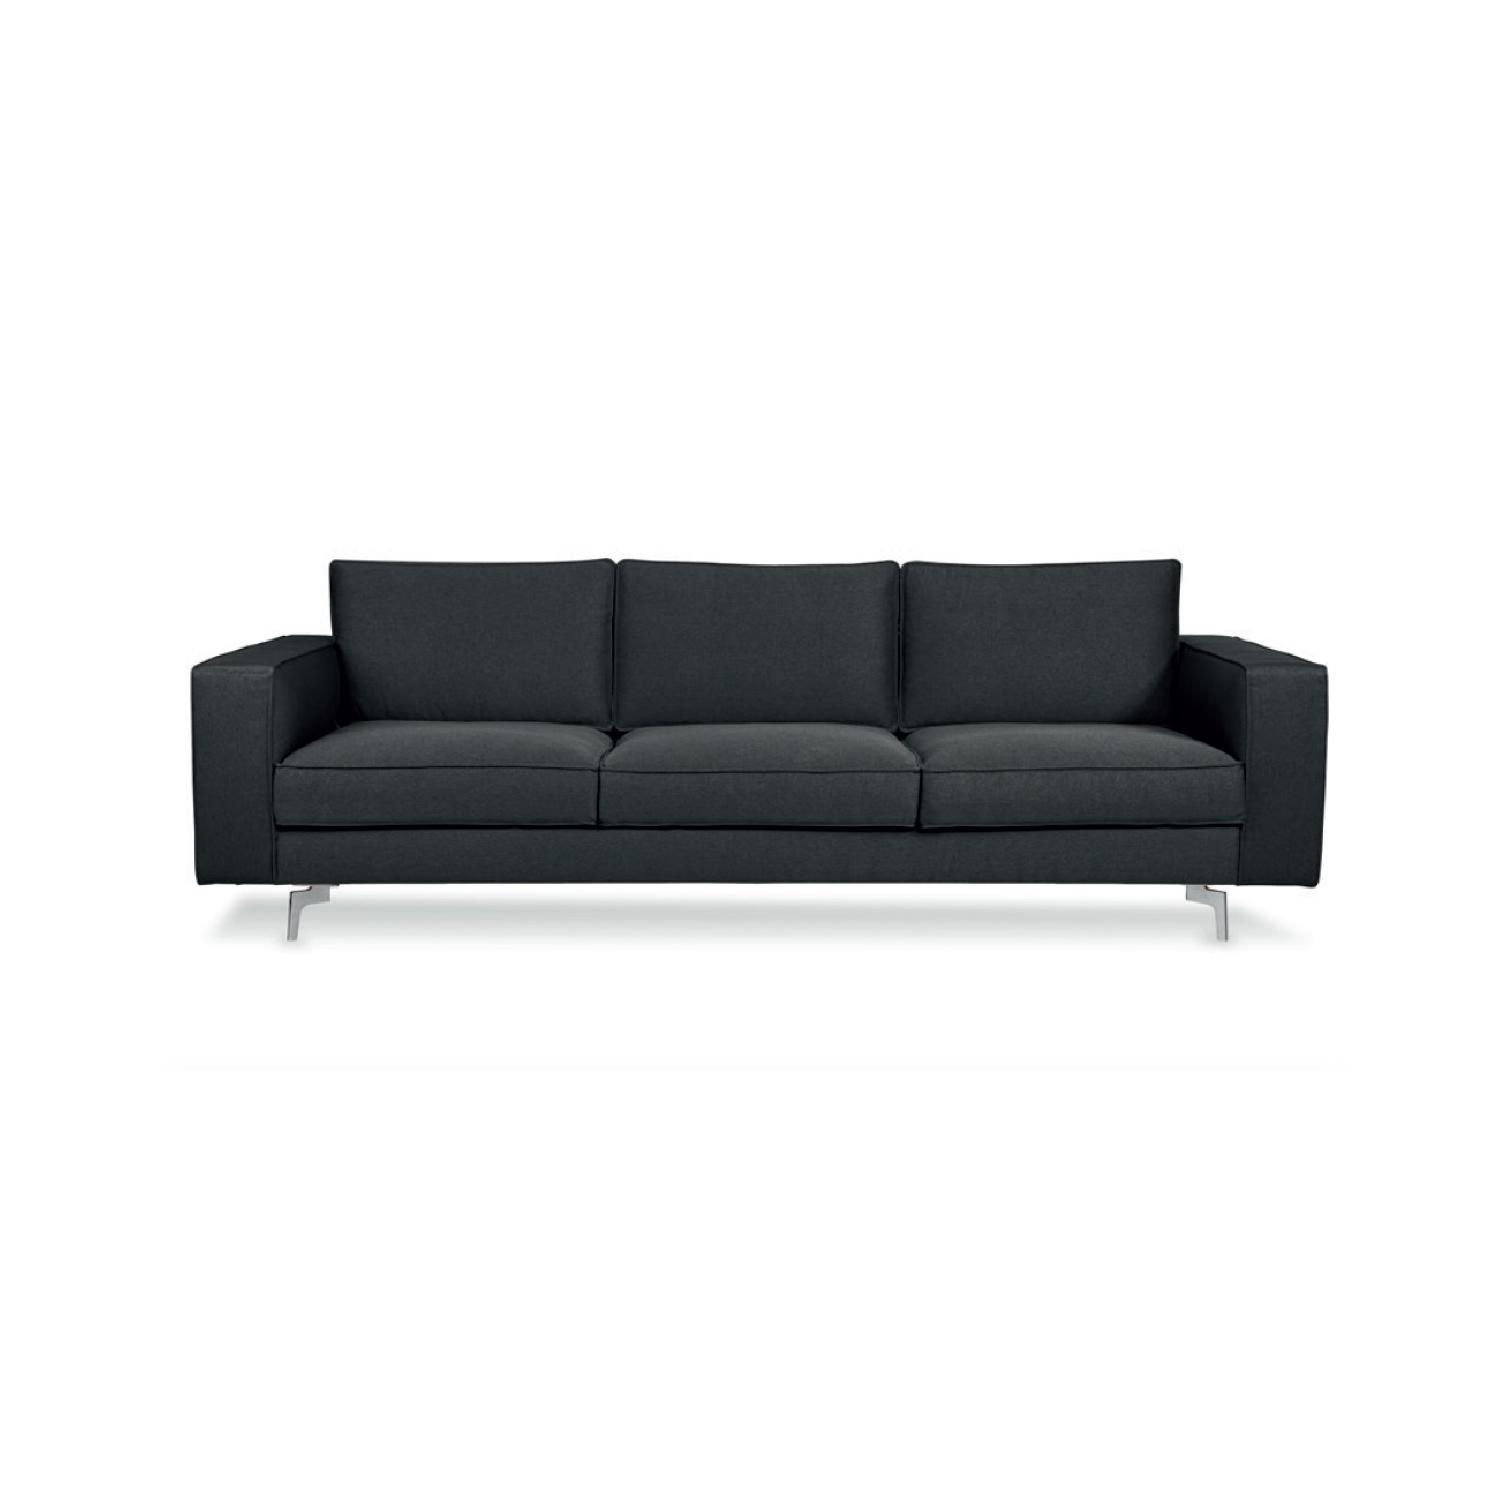 Calligaris Square 3 Seater Sofa w/ Metal Legs